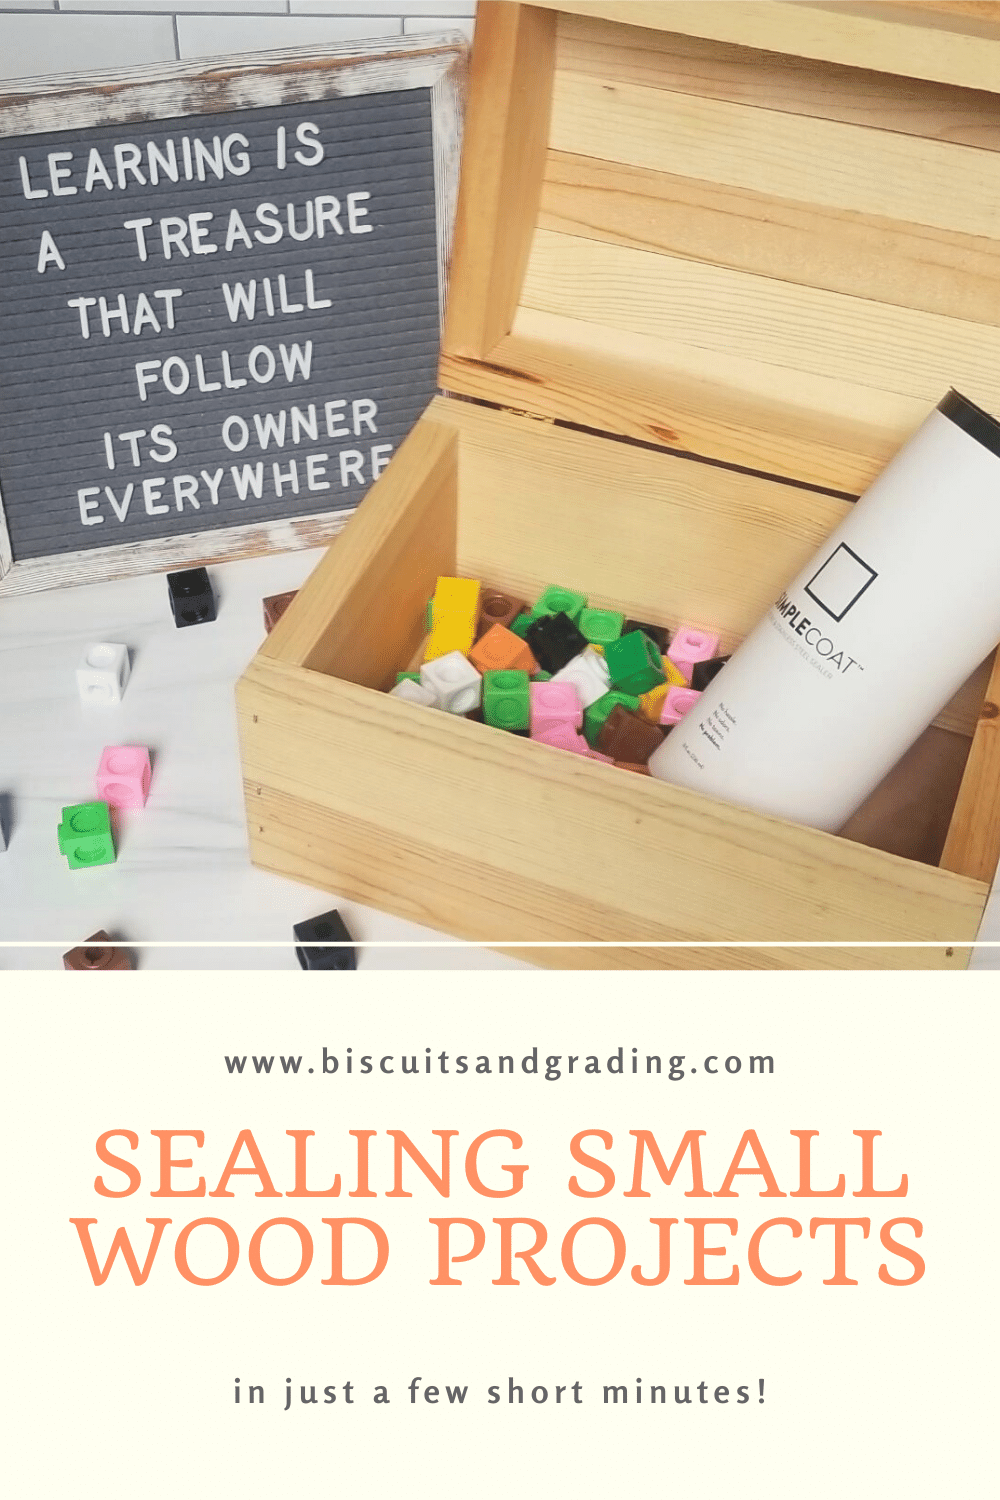 Sealing Small Wood Projects